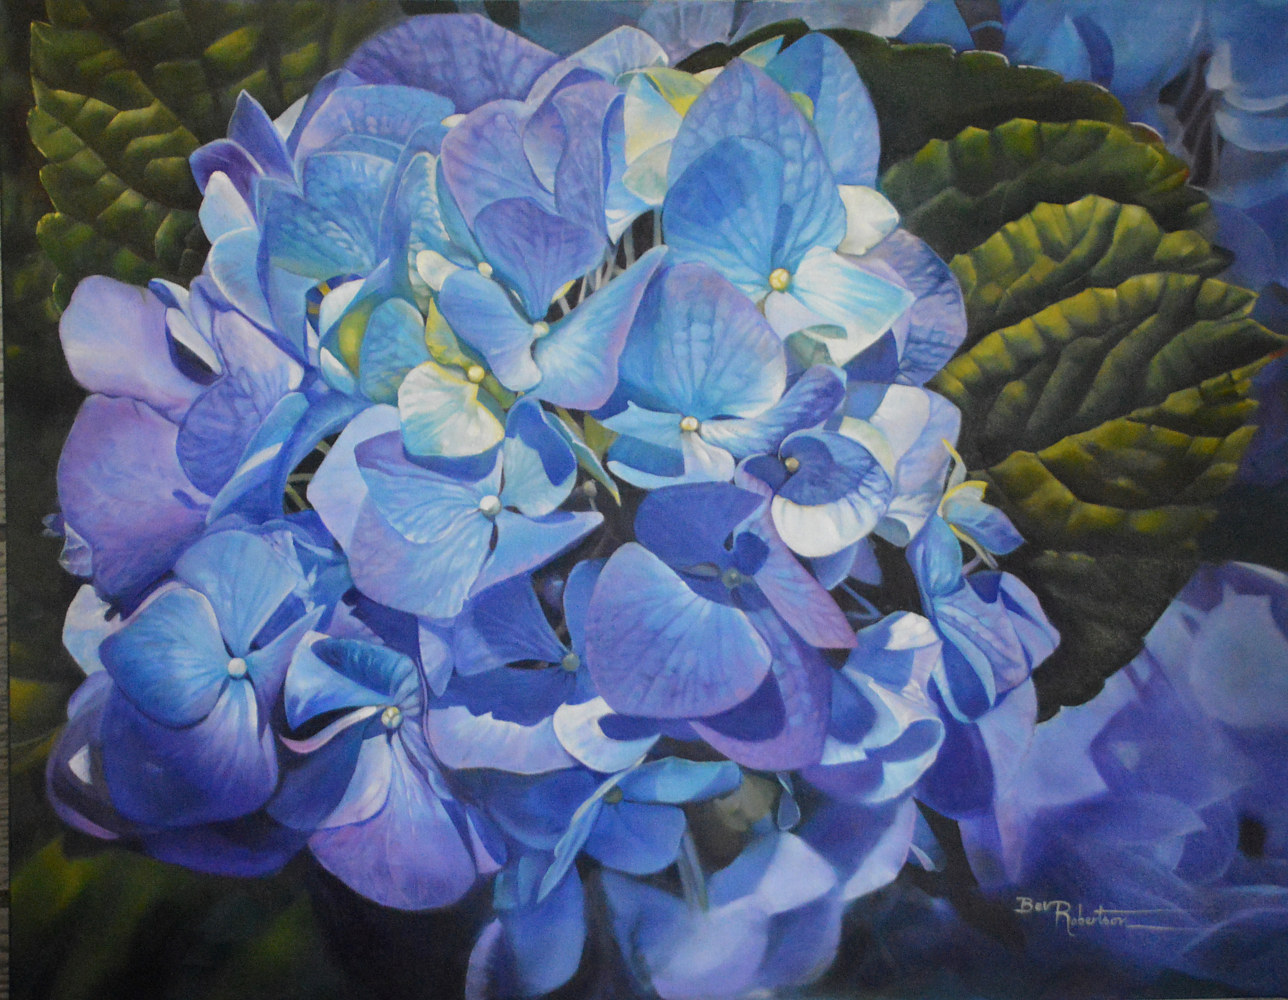 Cool Blue on a Warm Day 20186 by Bev Robertson